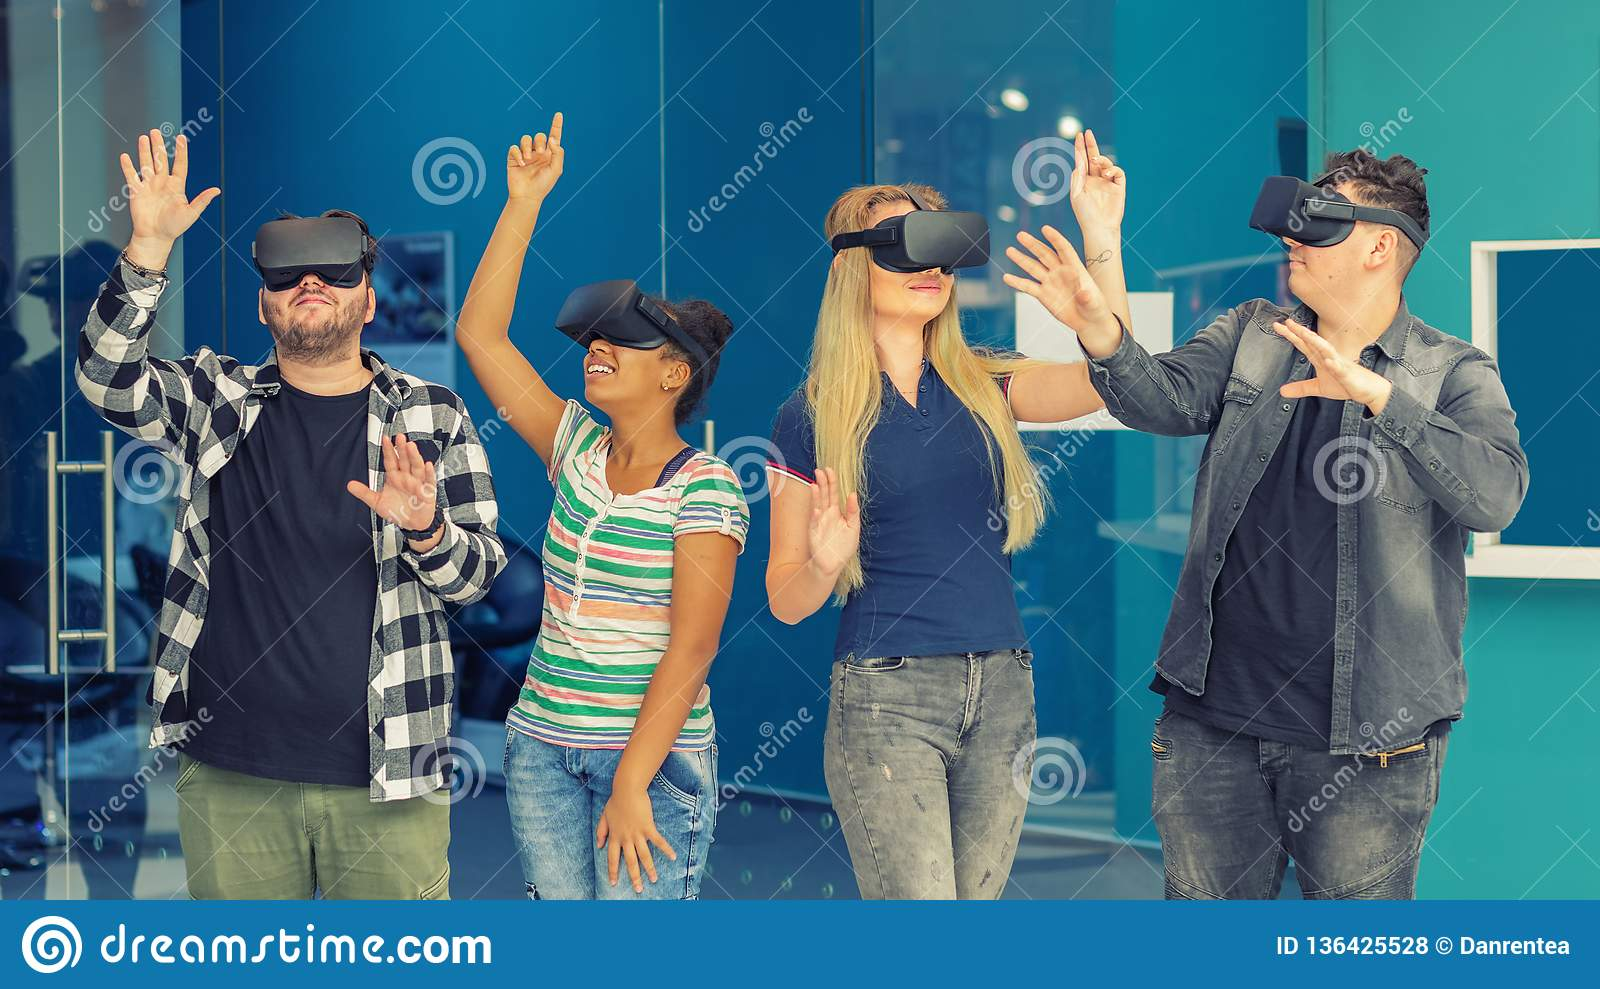 Multiracial friends group playing on vr glasses indoors. Virtual reality concept with young people having fun together.